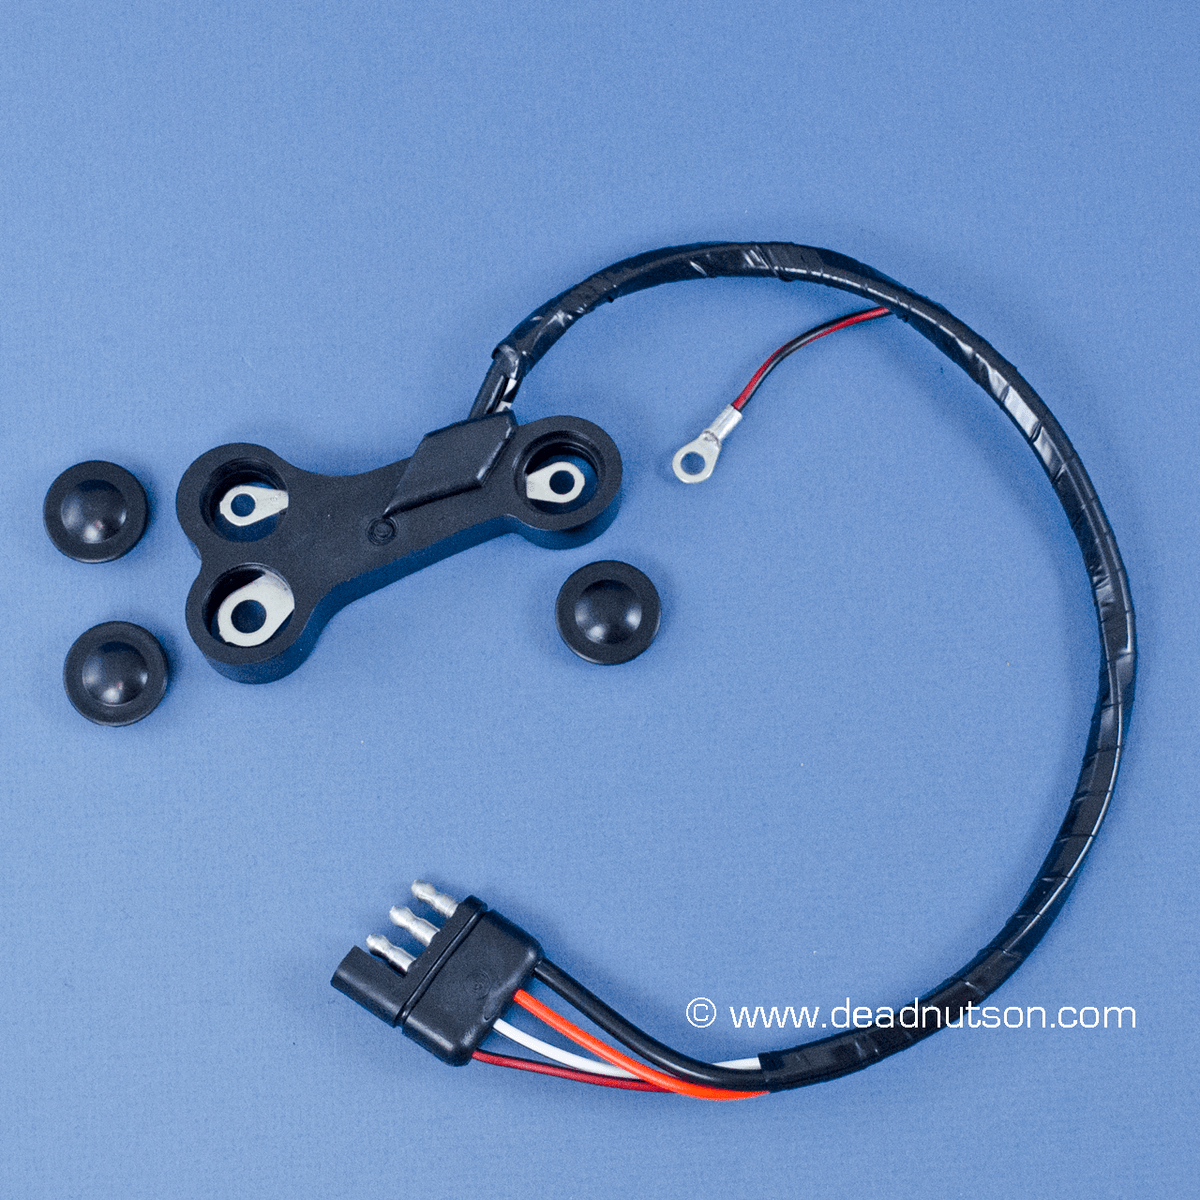 alternator wiring harness for 1970 mustangs with factory tachometer data wiring diagram [ 1200 x 1200 Pixel ]